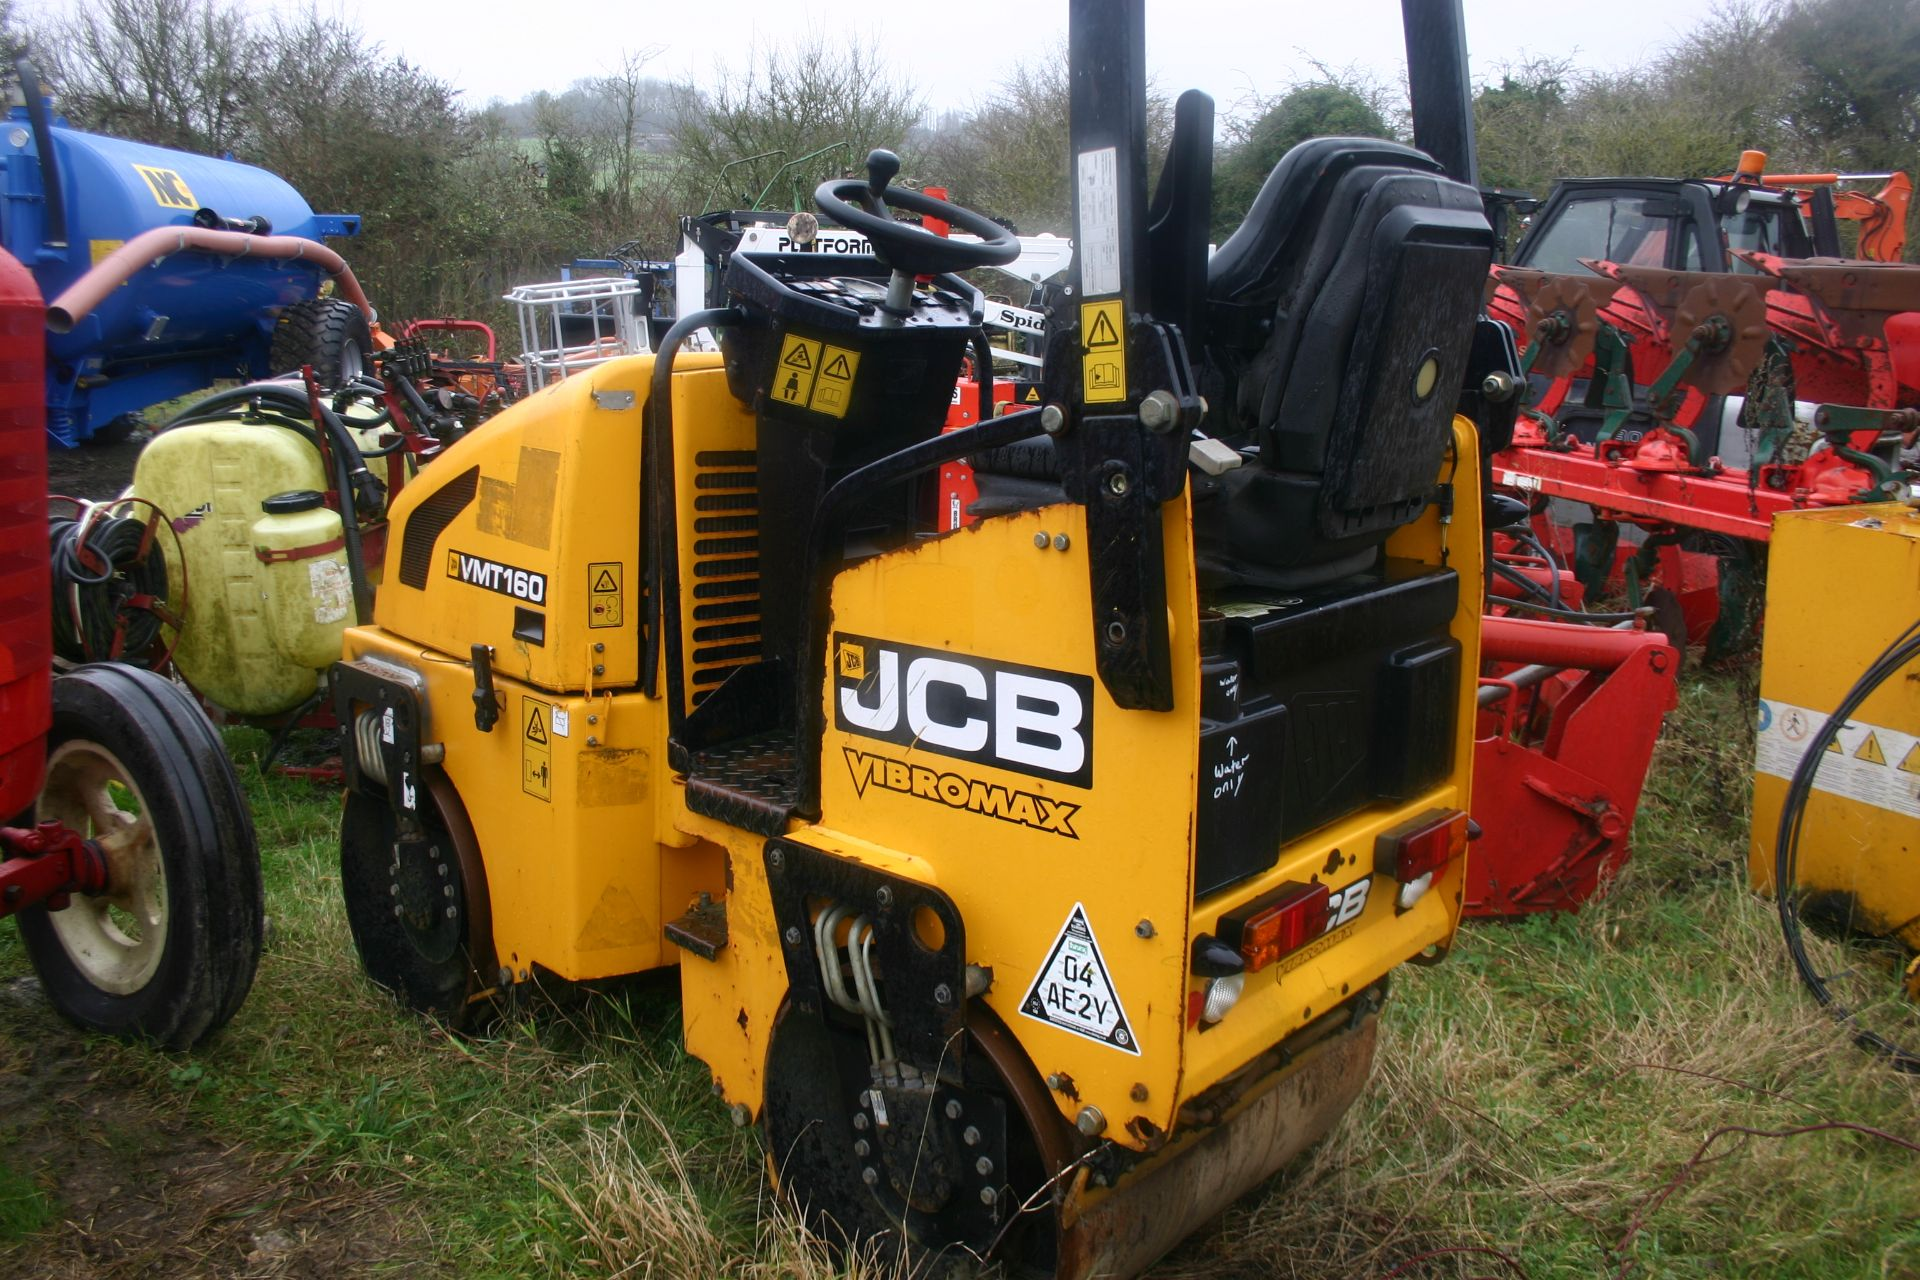 Lot 112 - JCB VIBROMAX VMT 160 RIDE ON VIBRATING ROLLER, YEAR 2011, BELIEVED TO HAVE DONE 390 HOURS *PLUS VAT*